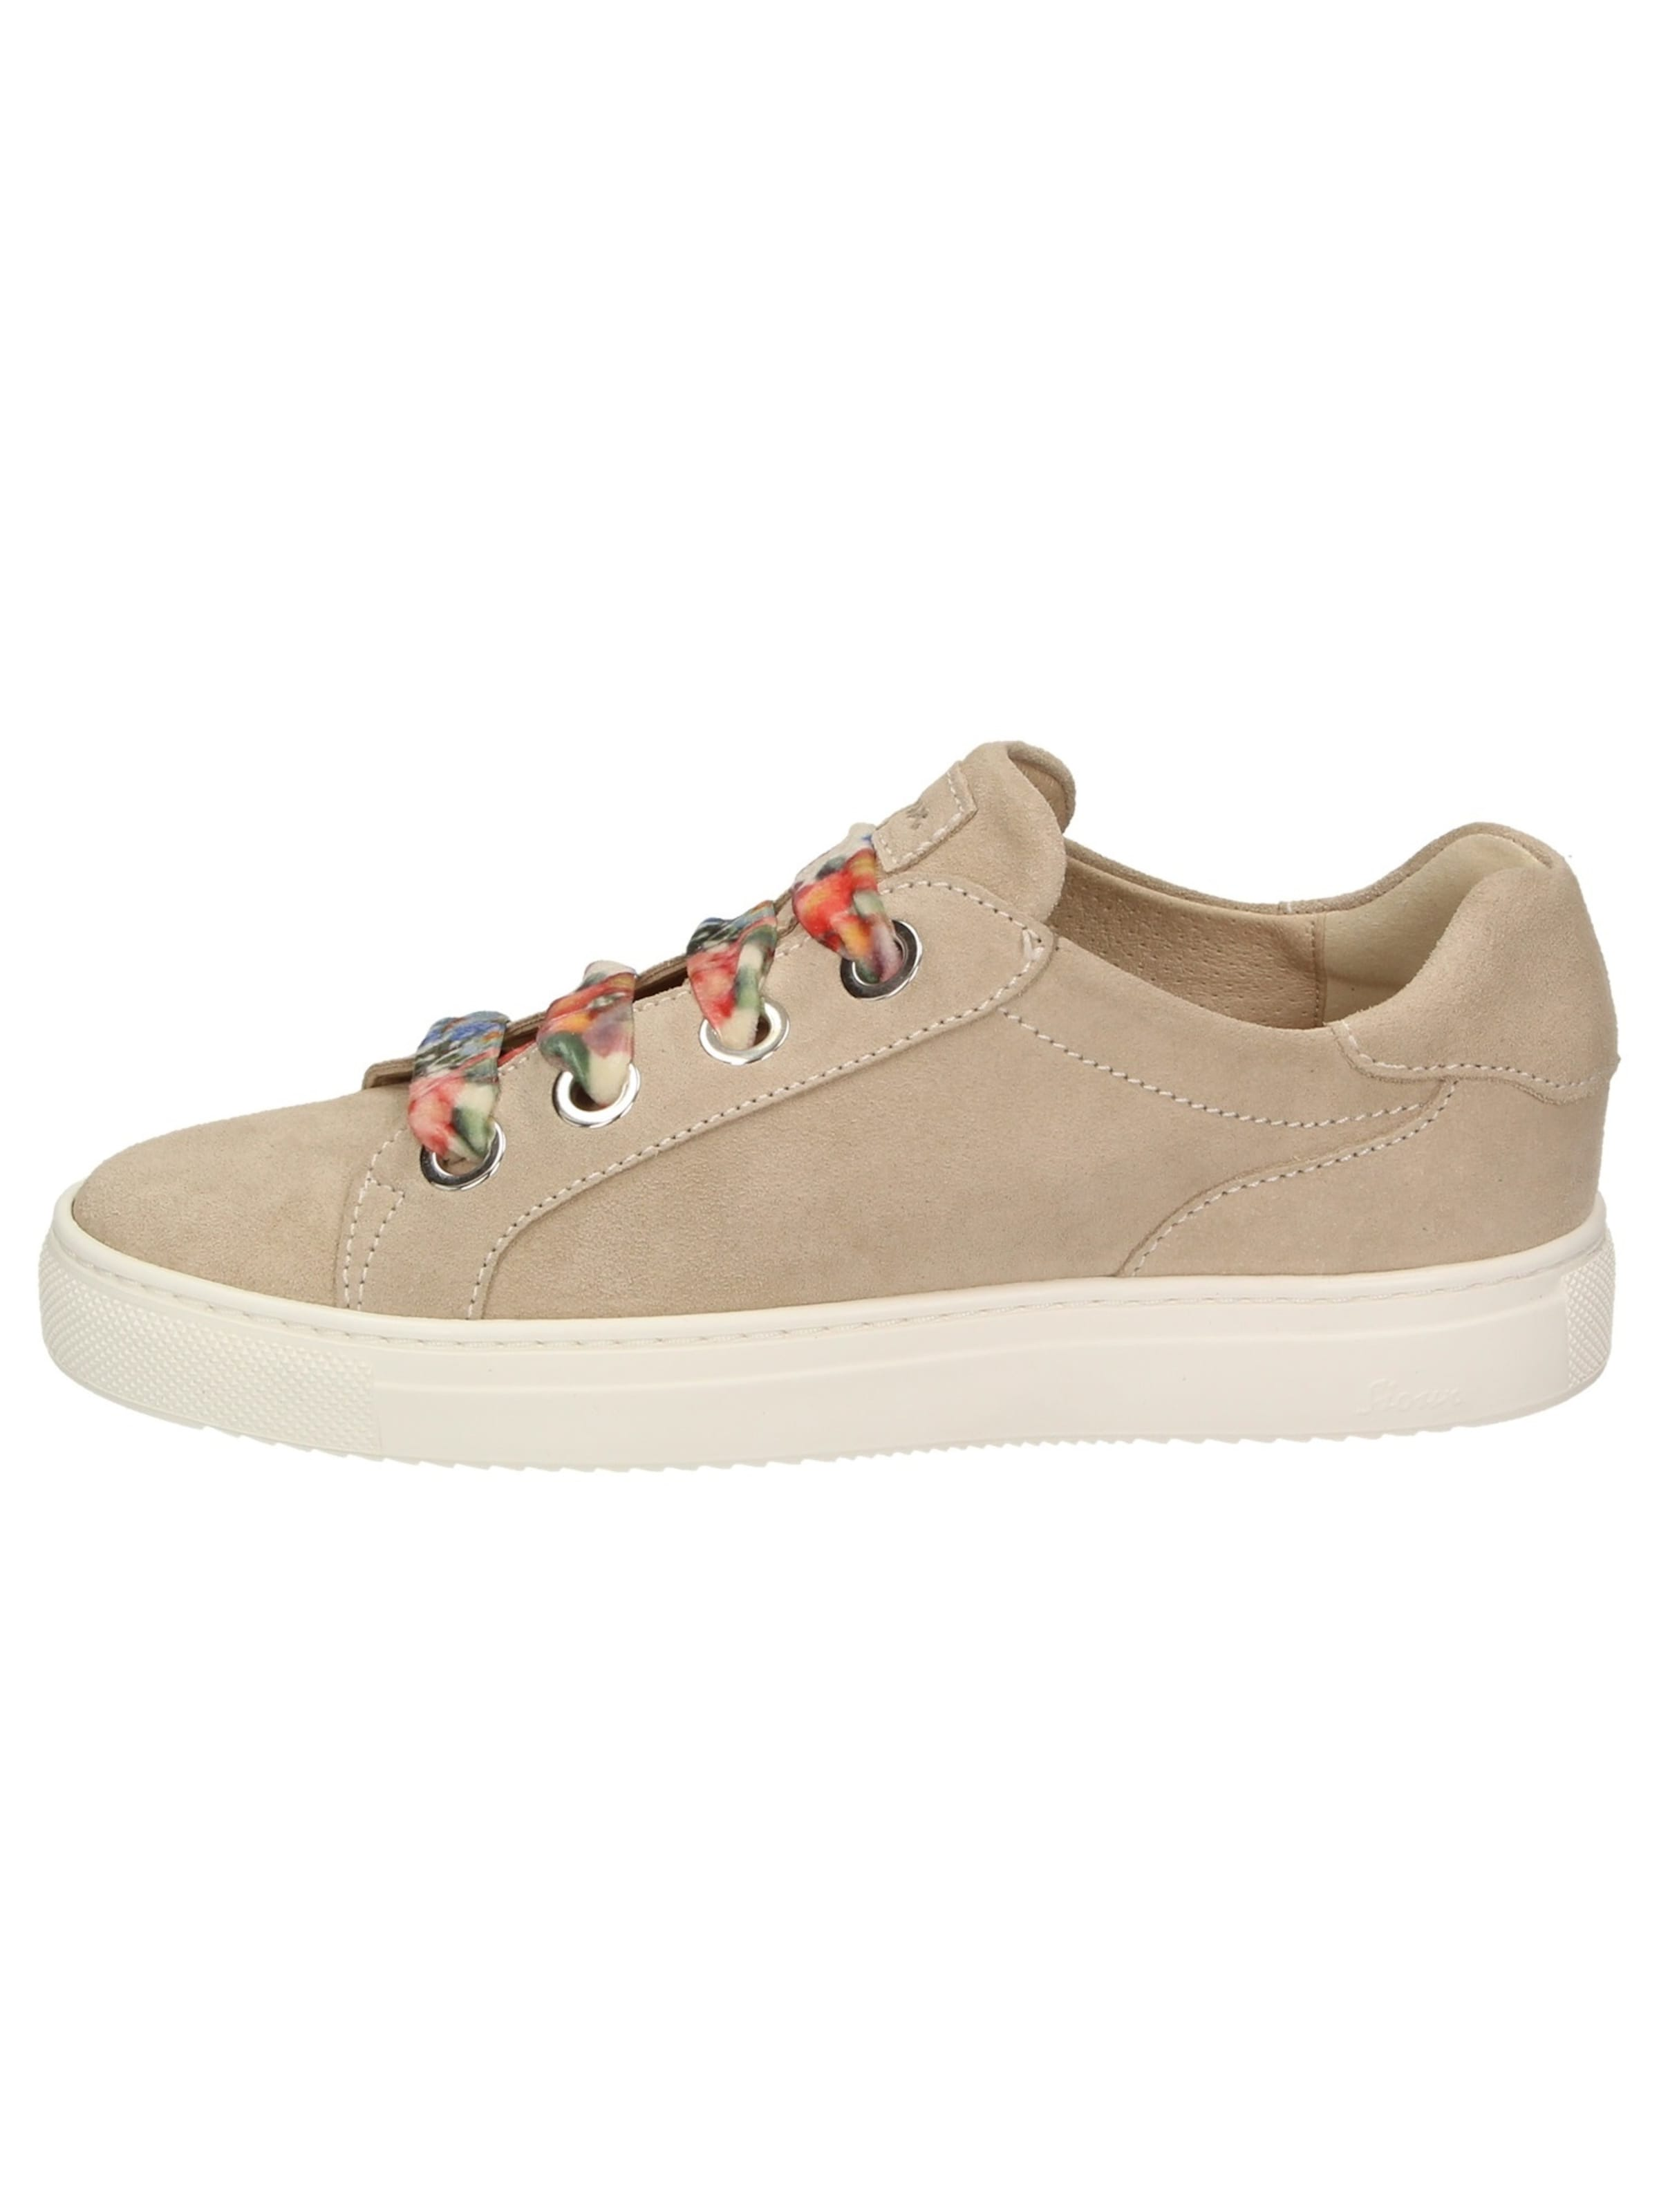 xl' In 702 'purvesia Hellbeige Sneaker Sioux fgvb76Yy